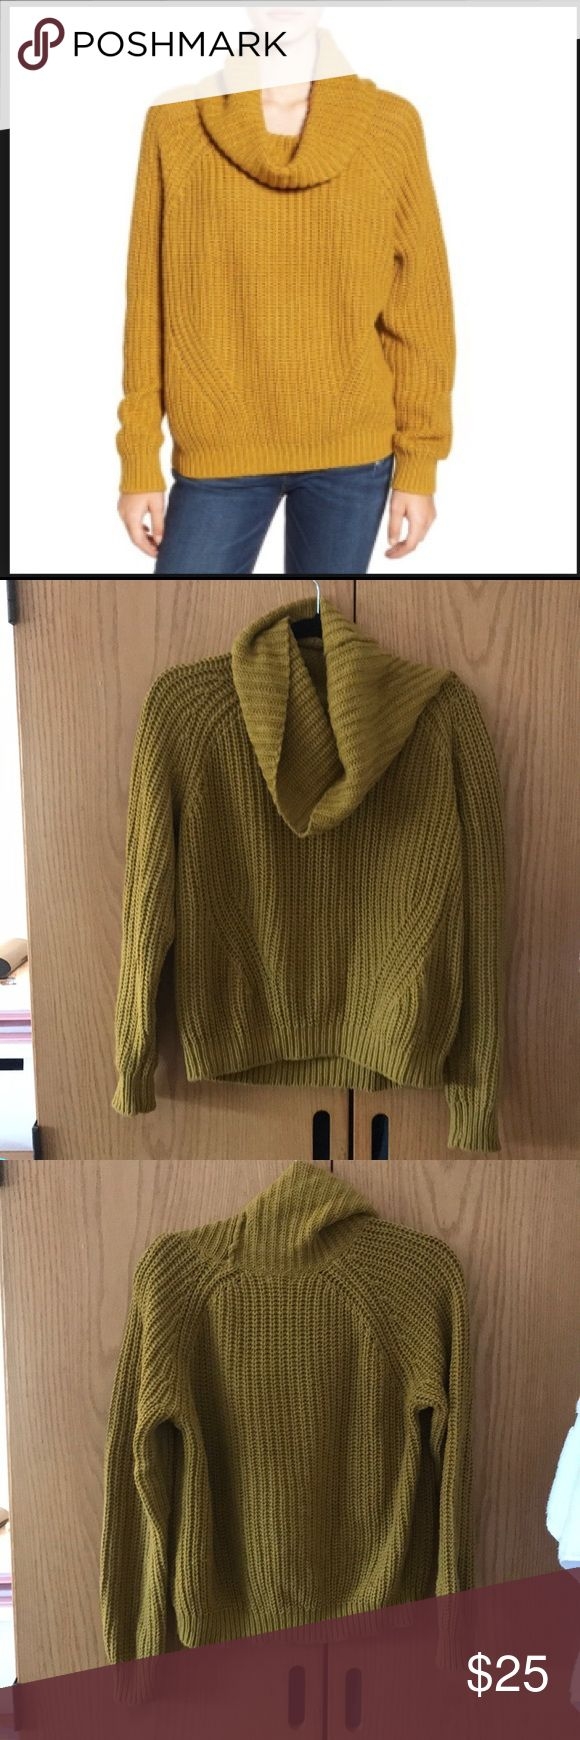 bp. Womans cowl neck sweater From Nordstrom. Unique yellow color, ribbed knit texture with a slouchy fit. Very comfortable and very soft. Never worn, just tried on. In great new condition. Nordstrom Sweaters Cowl & Turtlenecks